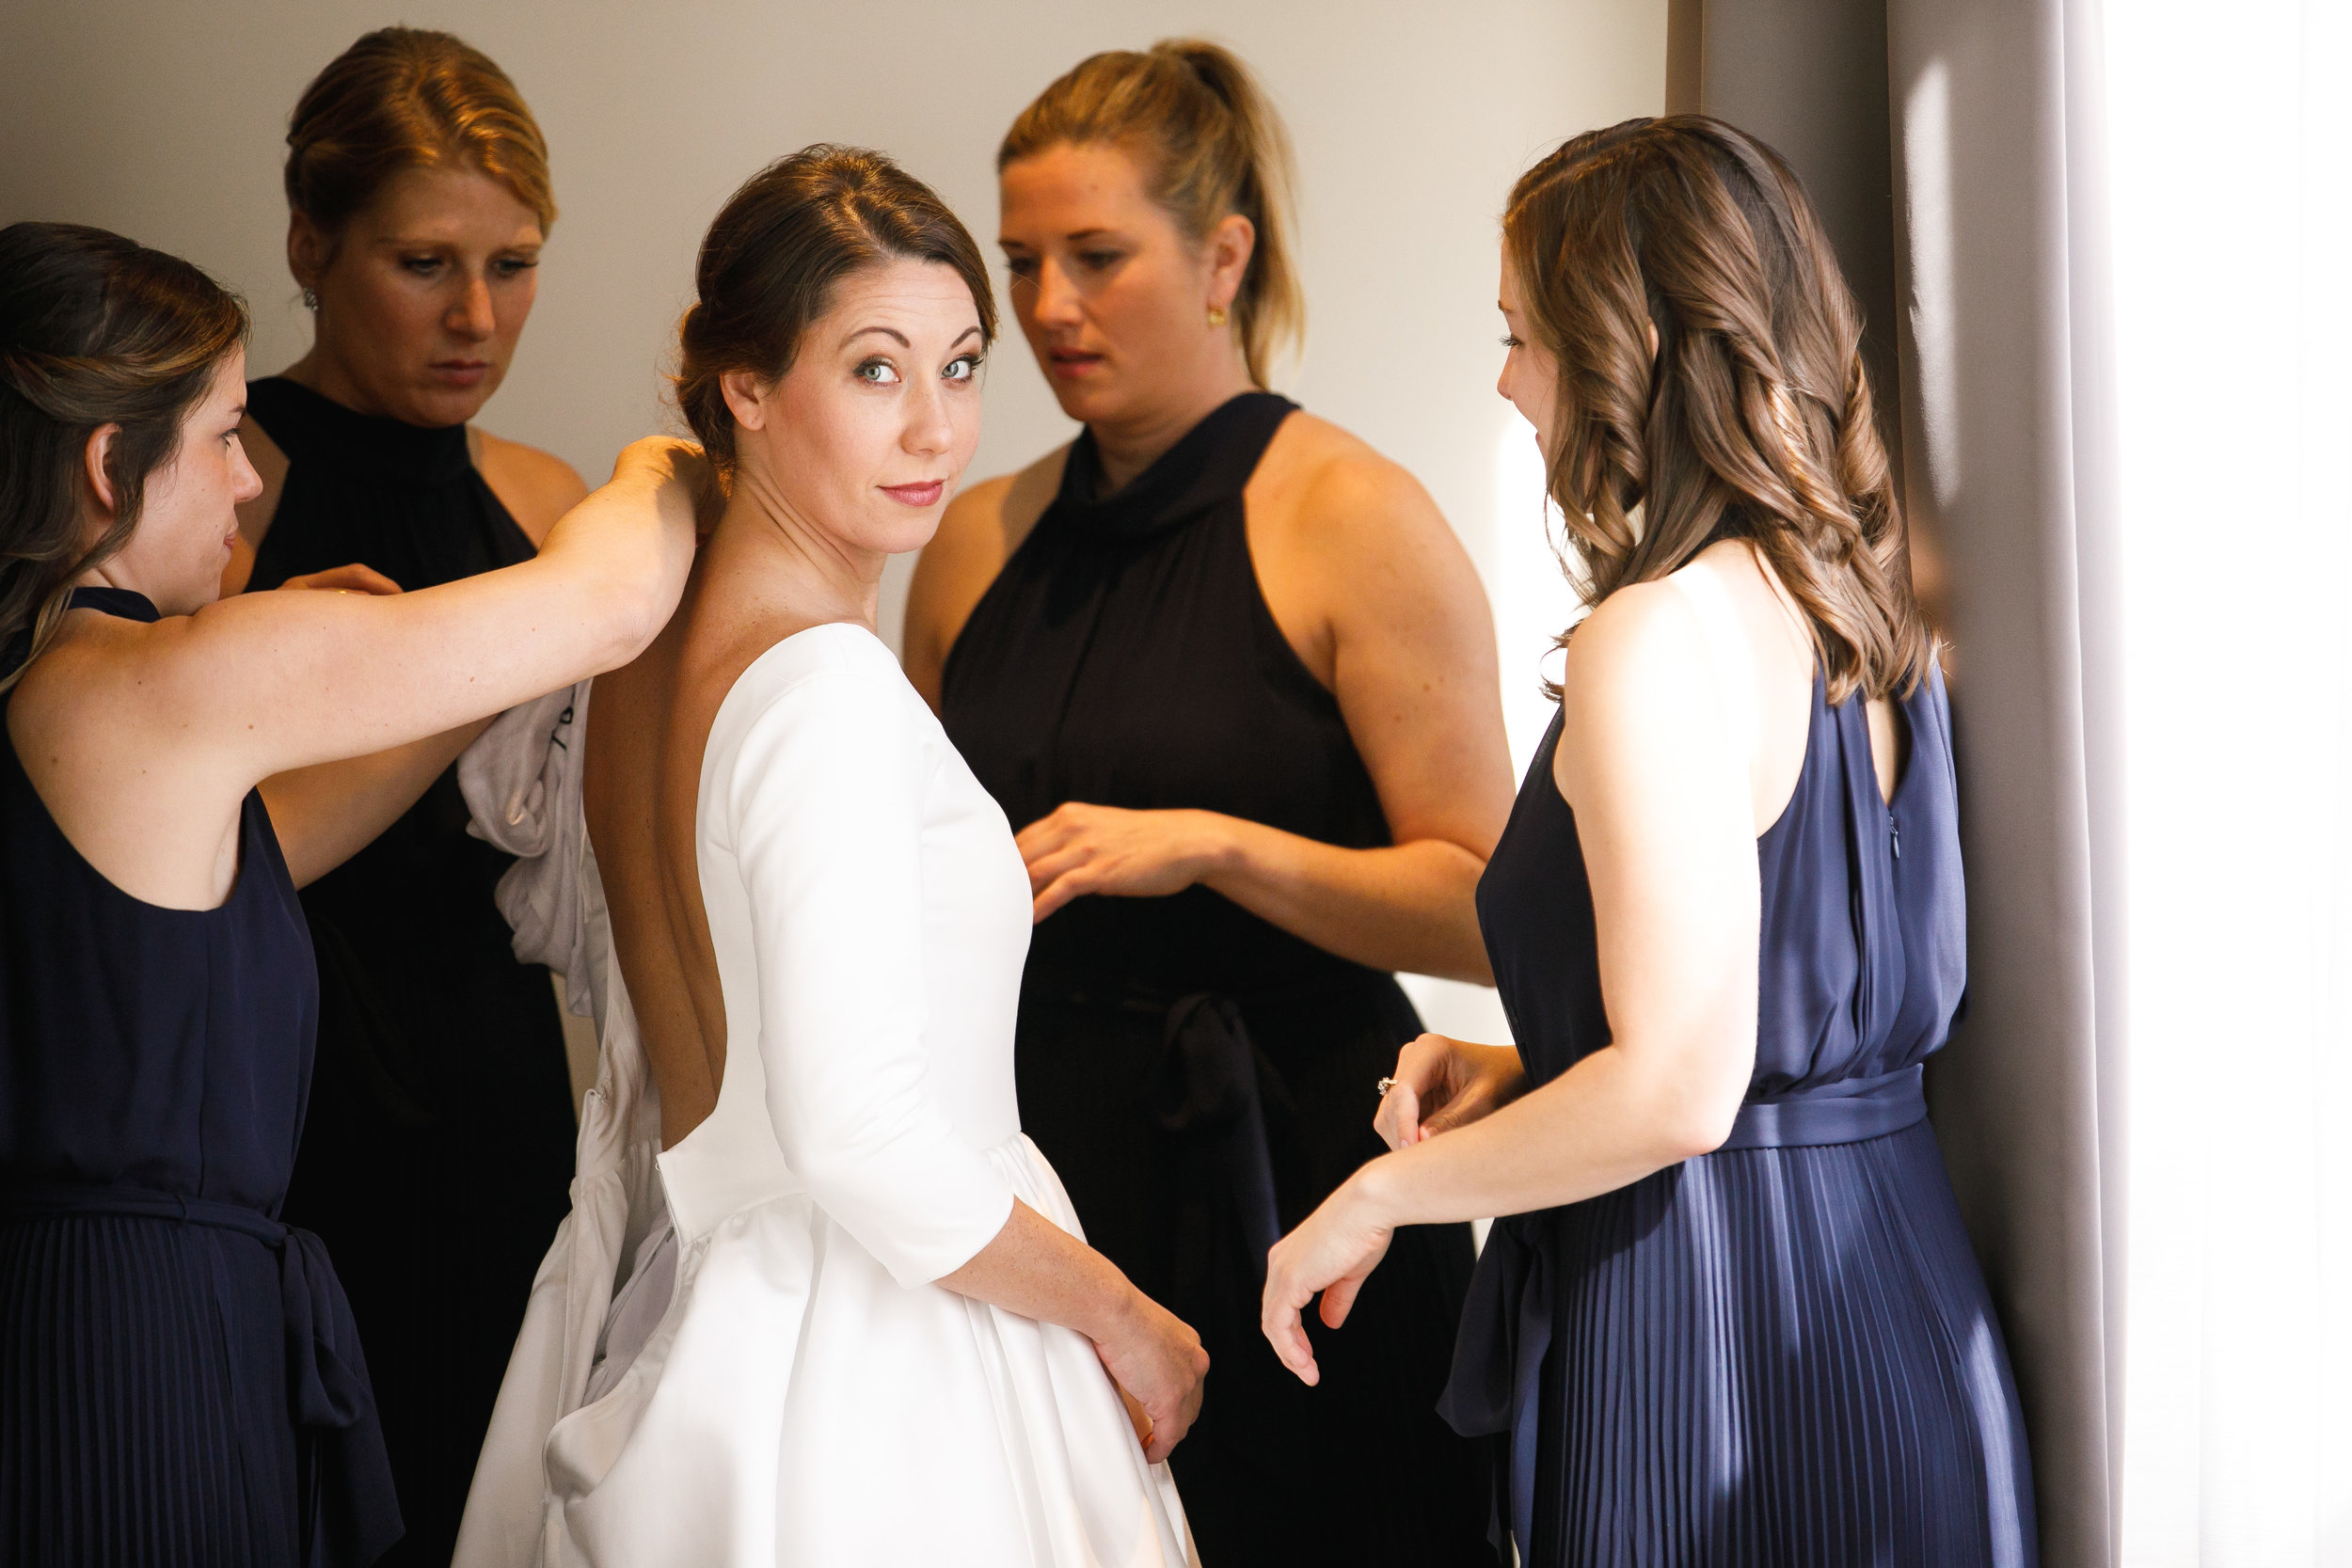 Brovado Wedding Photography | Machine Shop Minneapolis | Sixpence Events Day of Coordinating | getting ready shot of bride with her navy bridesmaids.jpg